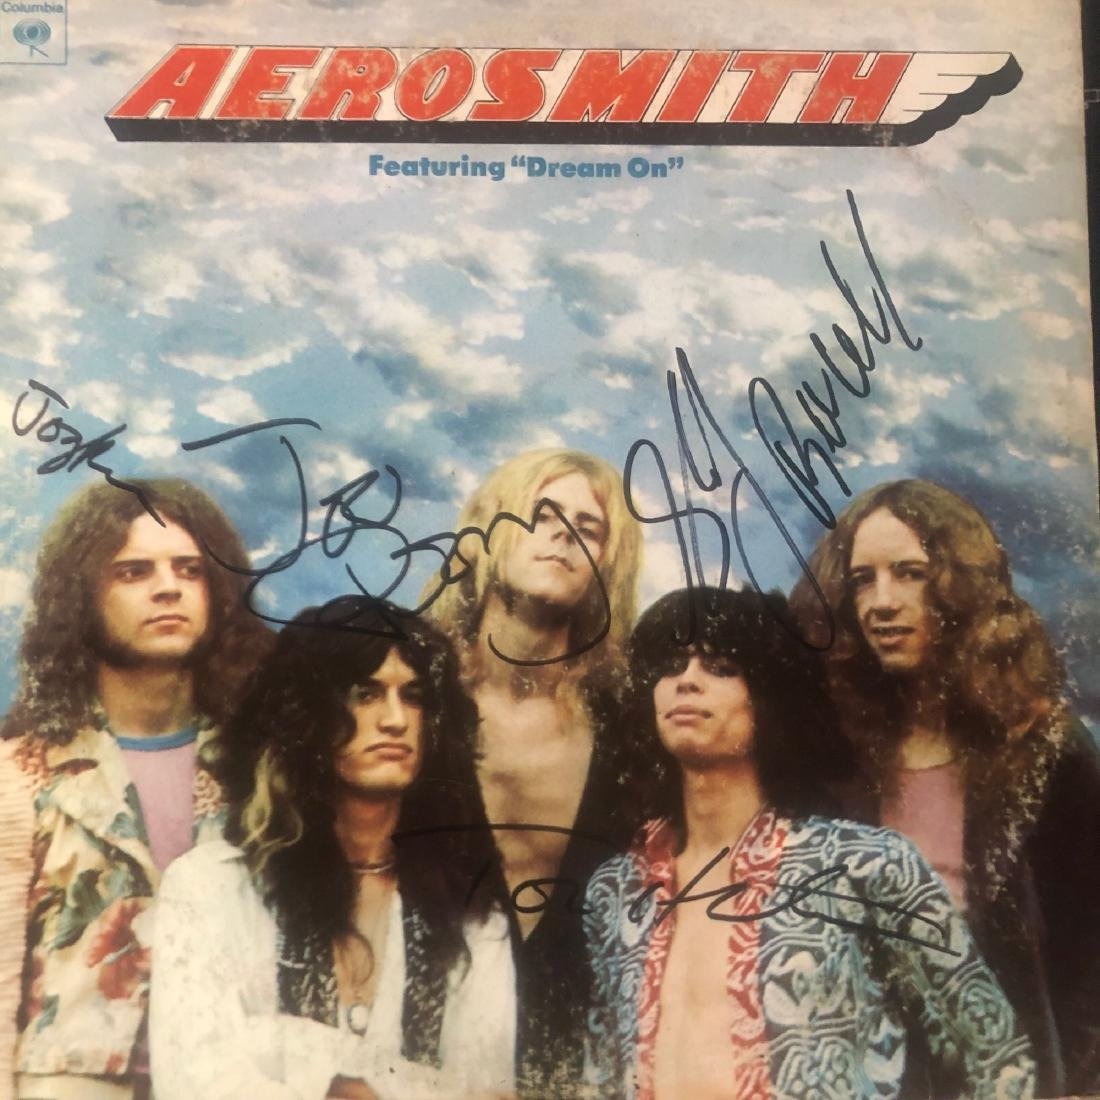 aerosmith album covers in order